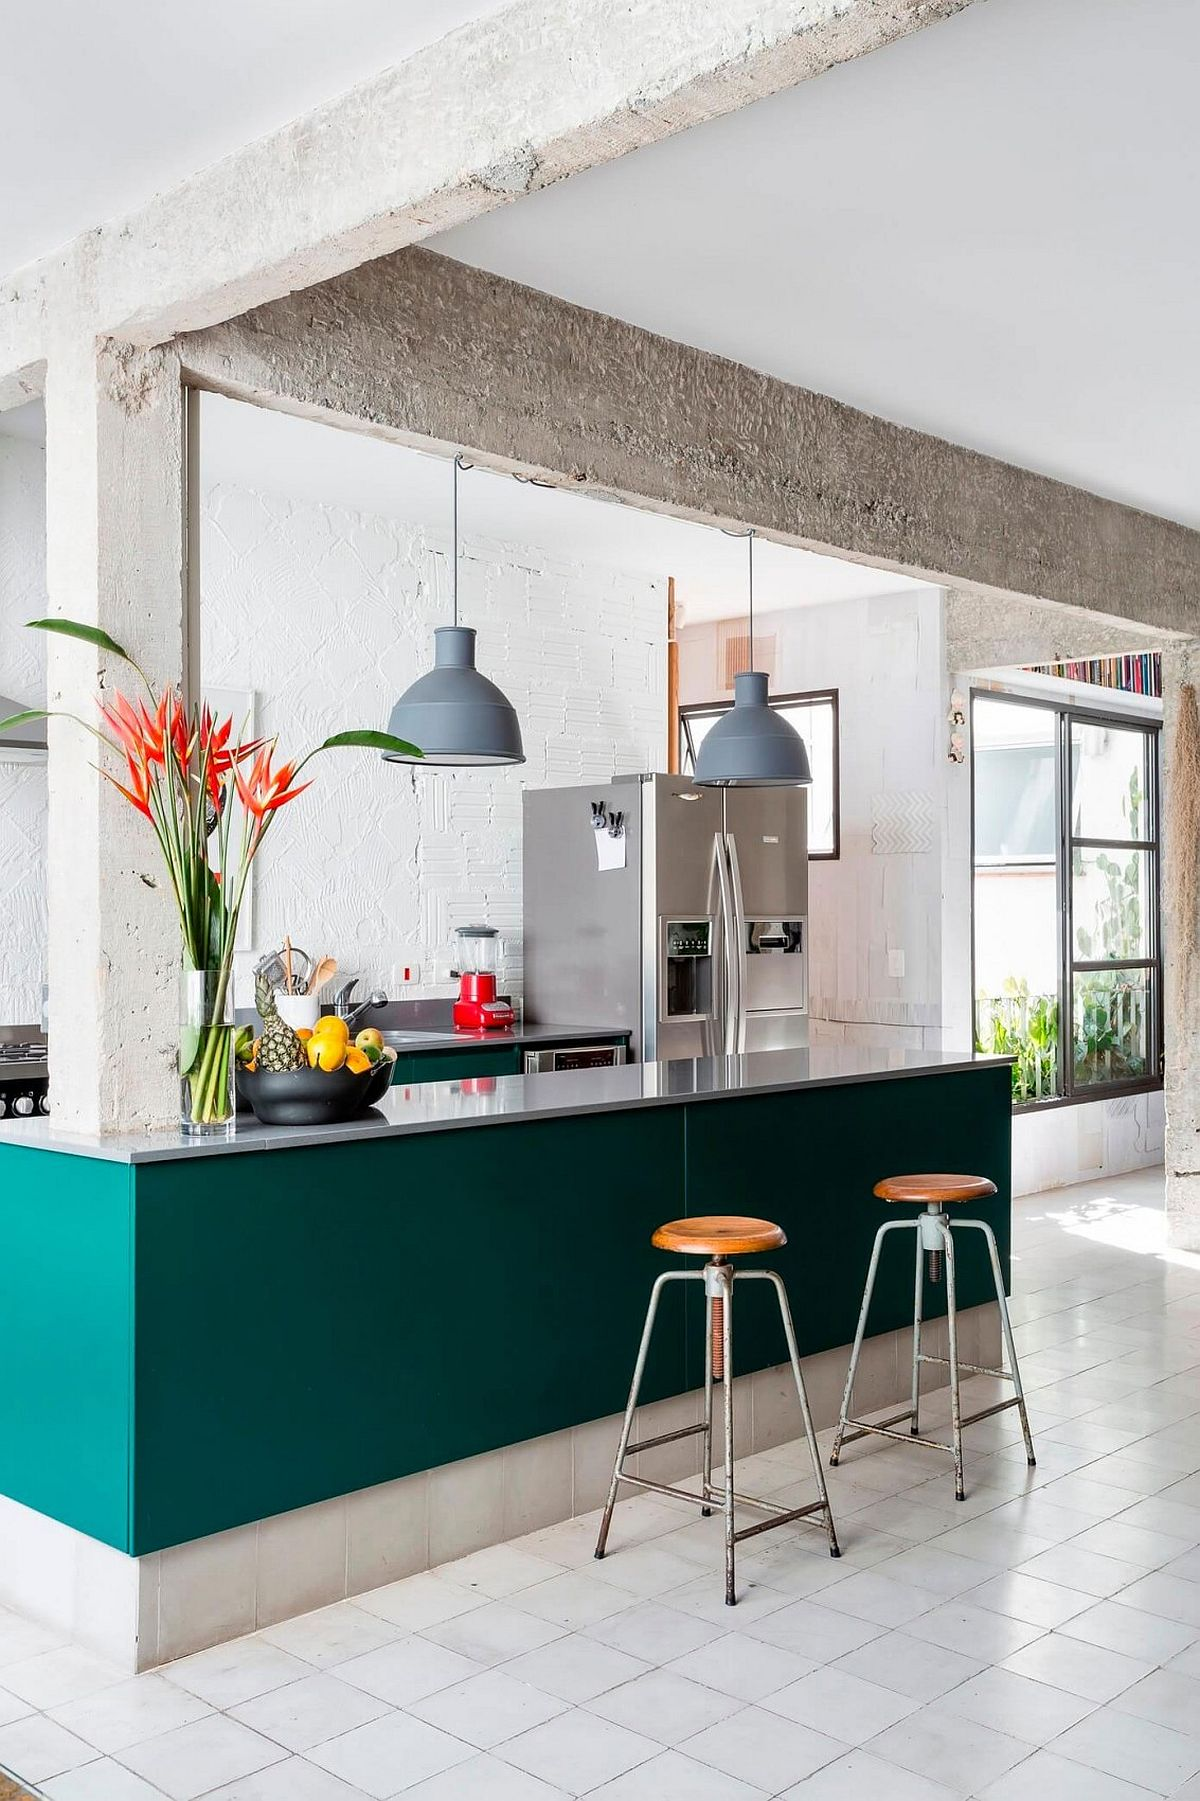 Colorful kitchen island in teal is an absolute showstopper